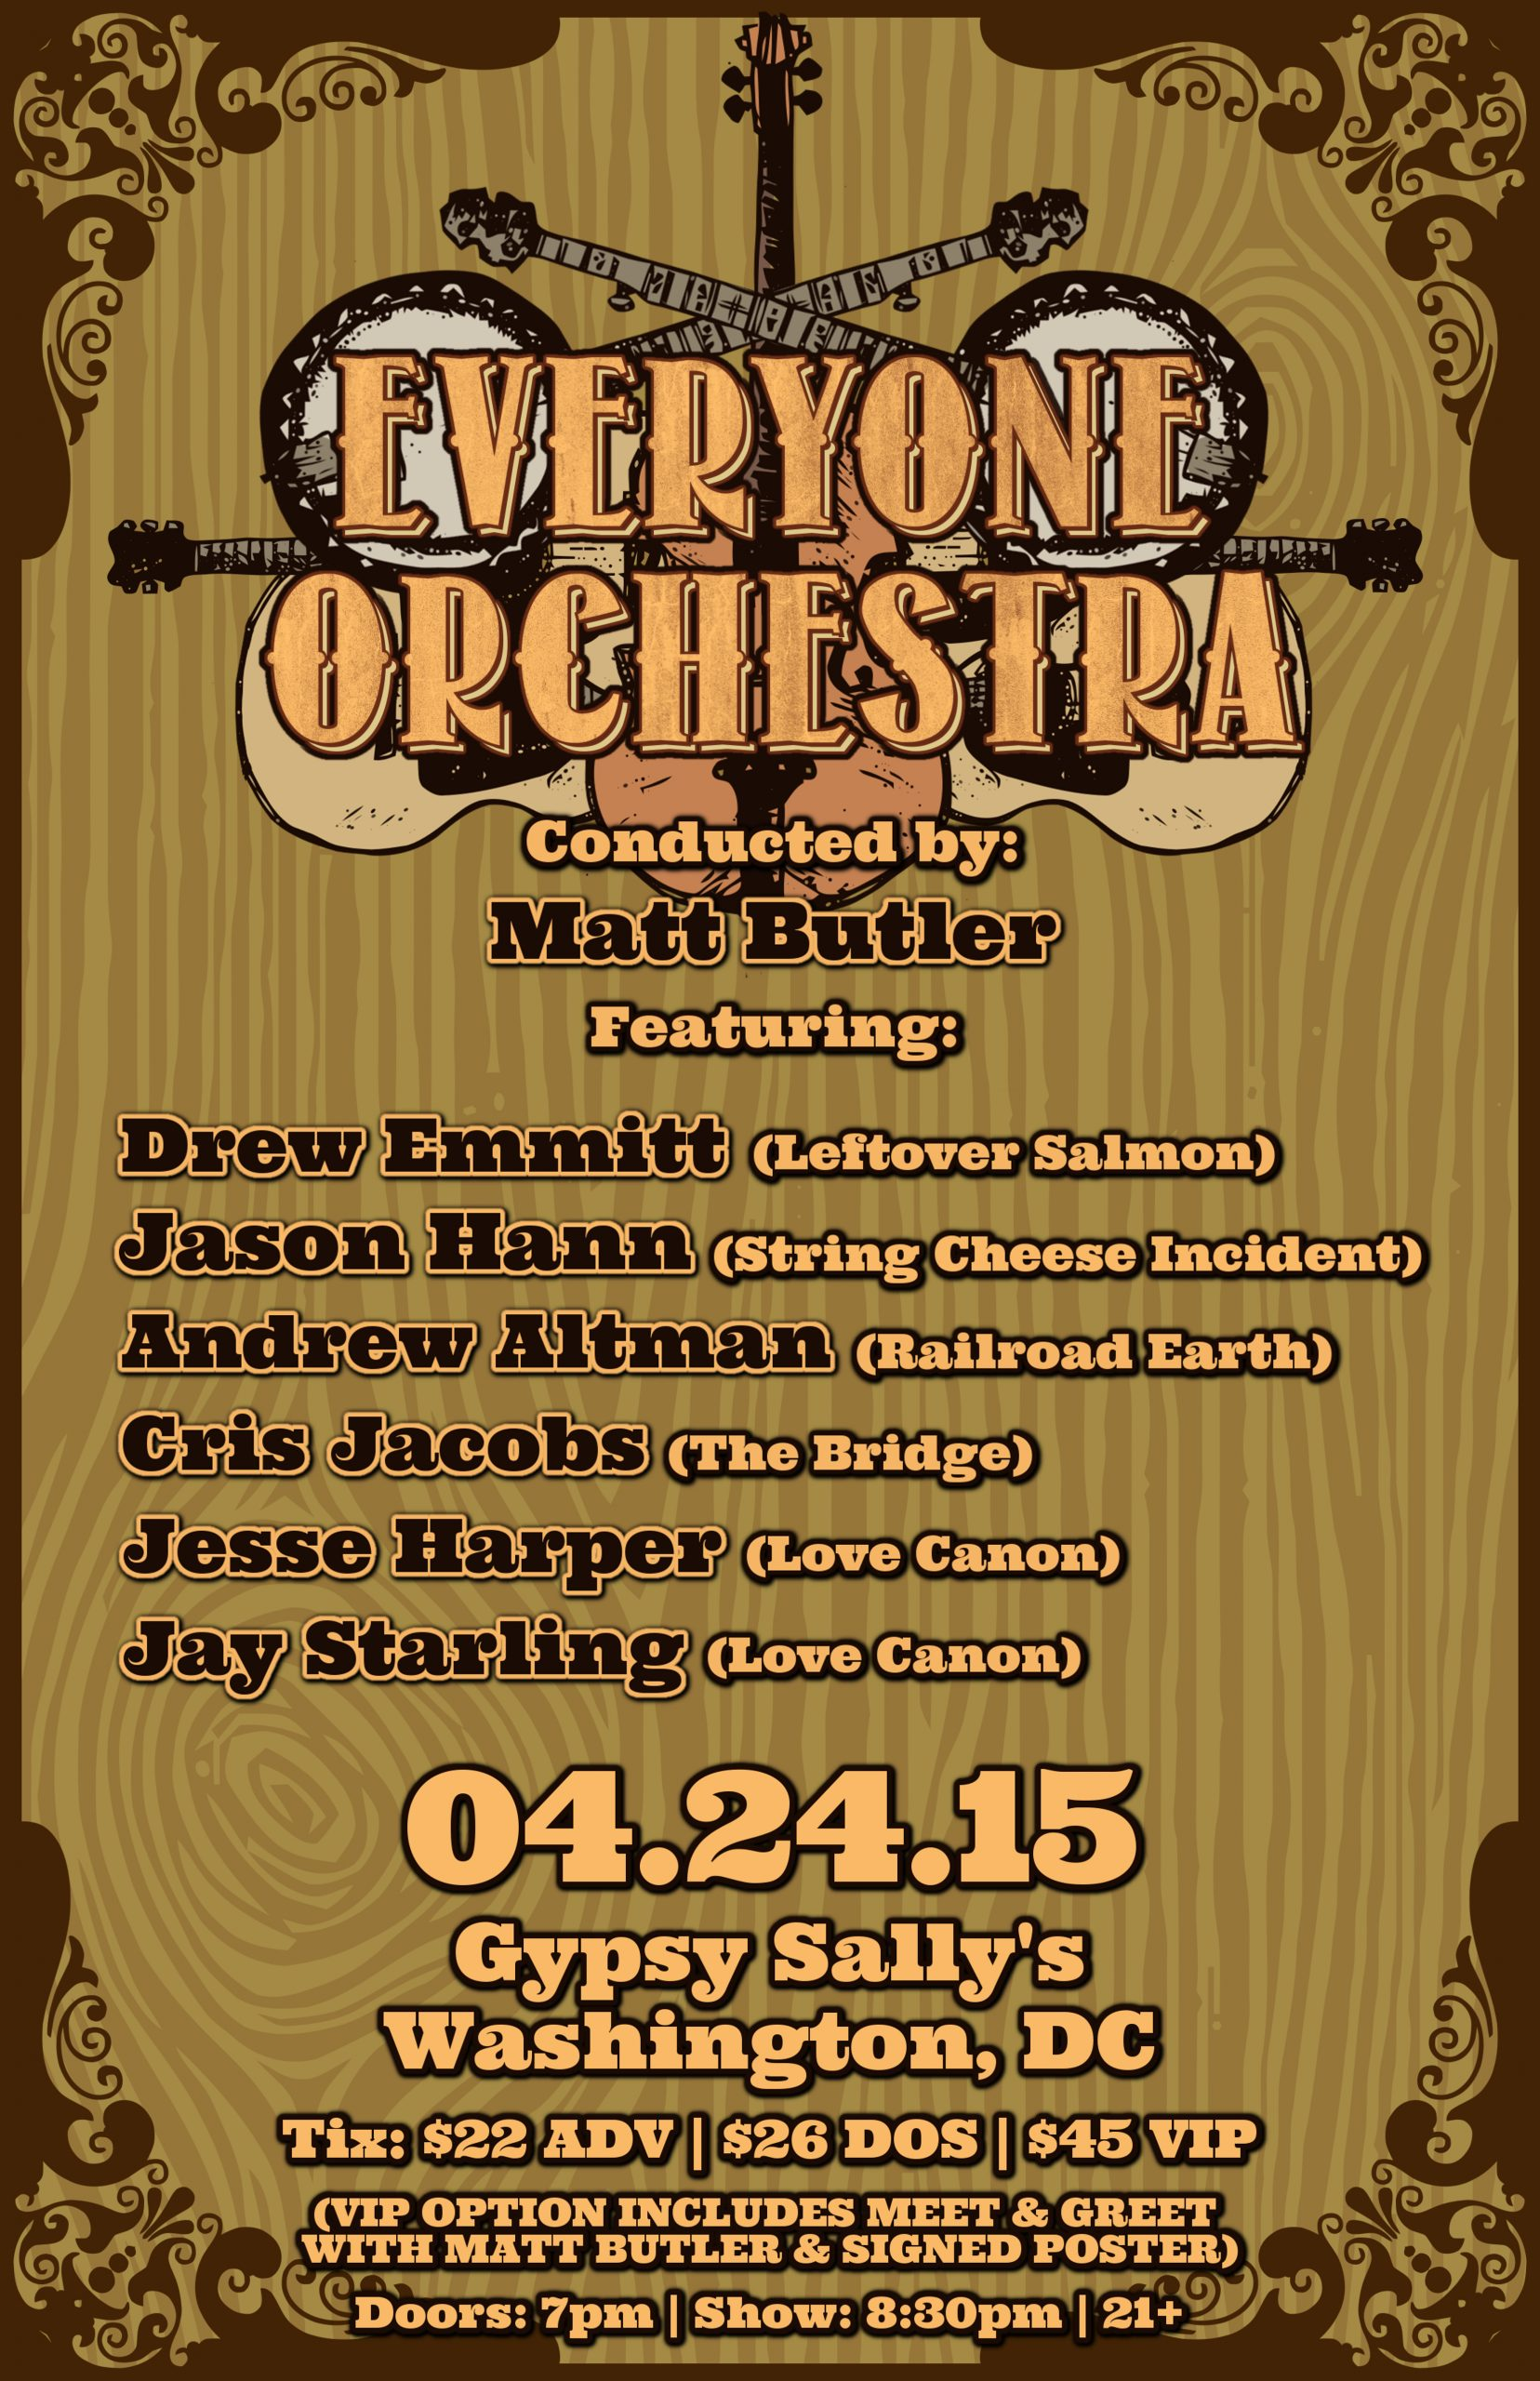 The Everyone Orchestra Plays Gypsy Sally's Fri 4/24 w/ Members of Leftover Salmon, String Cheese Incident, Railroad Earth, The Bridge, and Love Canon